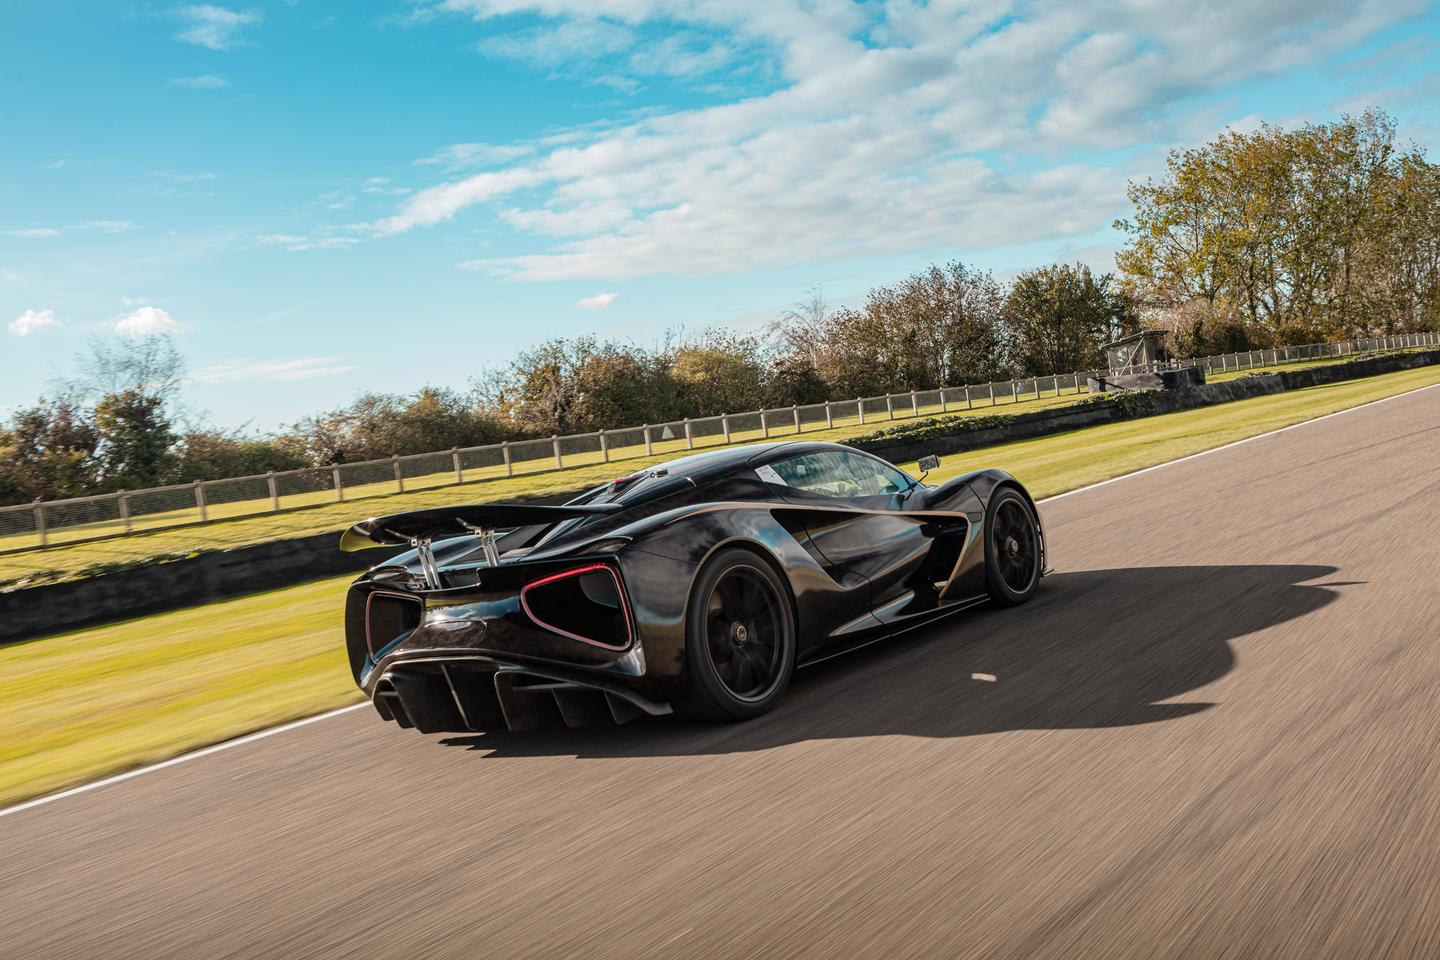 Ripping up the circuit, the Lotus Evija's all-electric powertrain provides 500 horsepower to each wheel